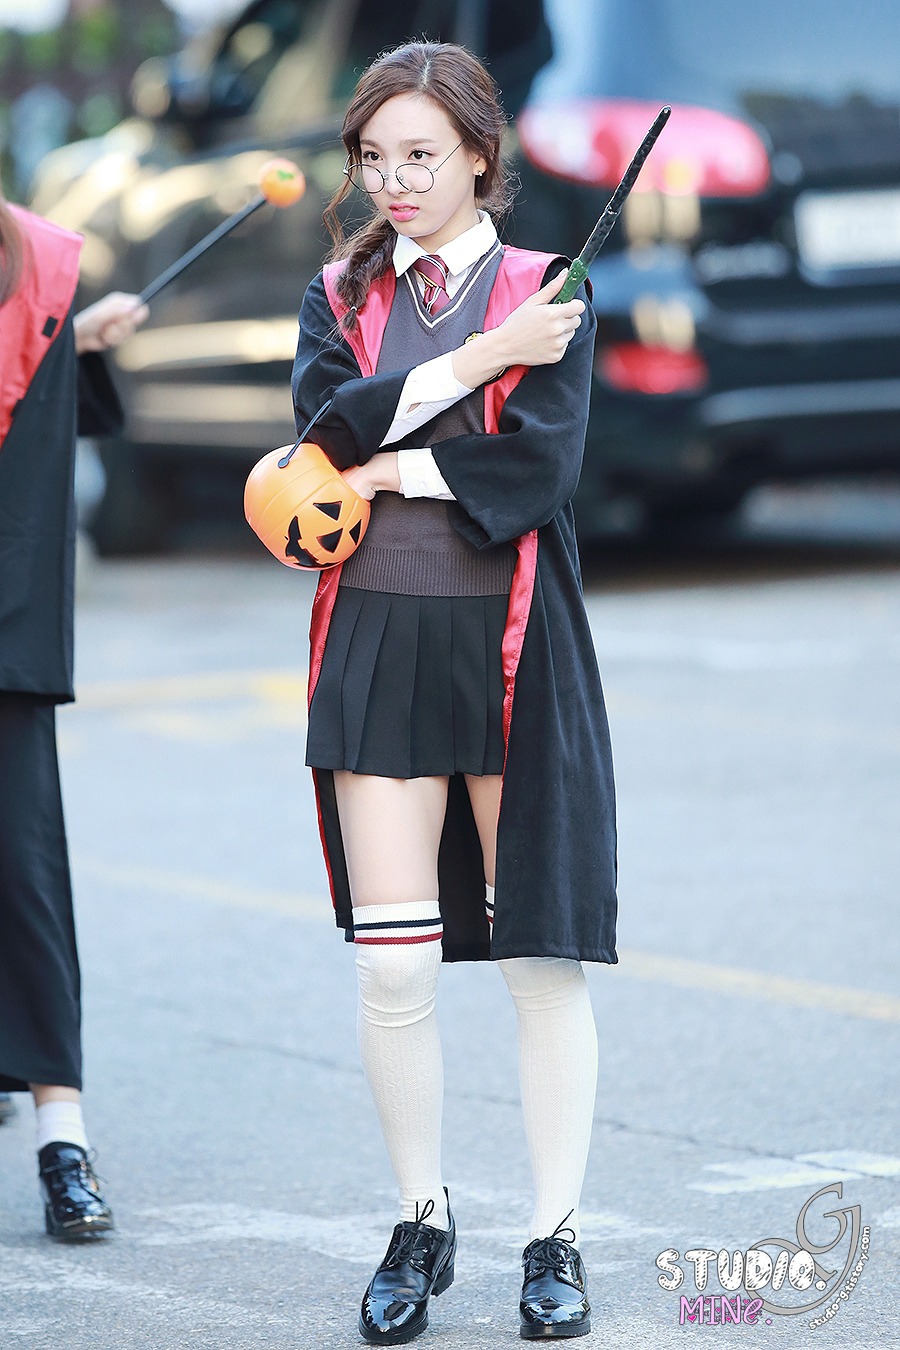 Twice's Nayeon arrives at Music Bank in Harry Potter cosplay. / Source: Studio-G